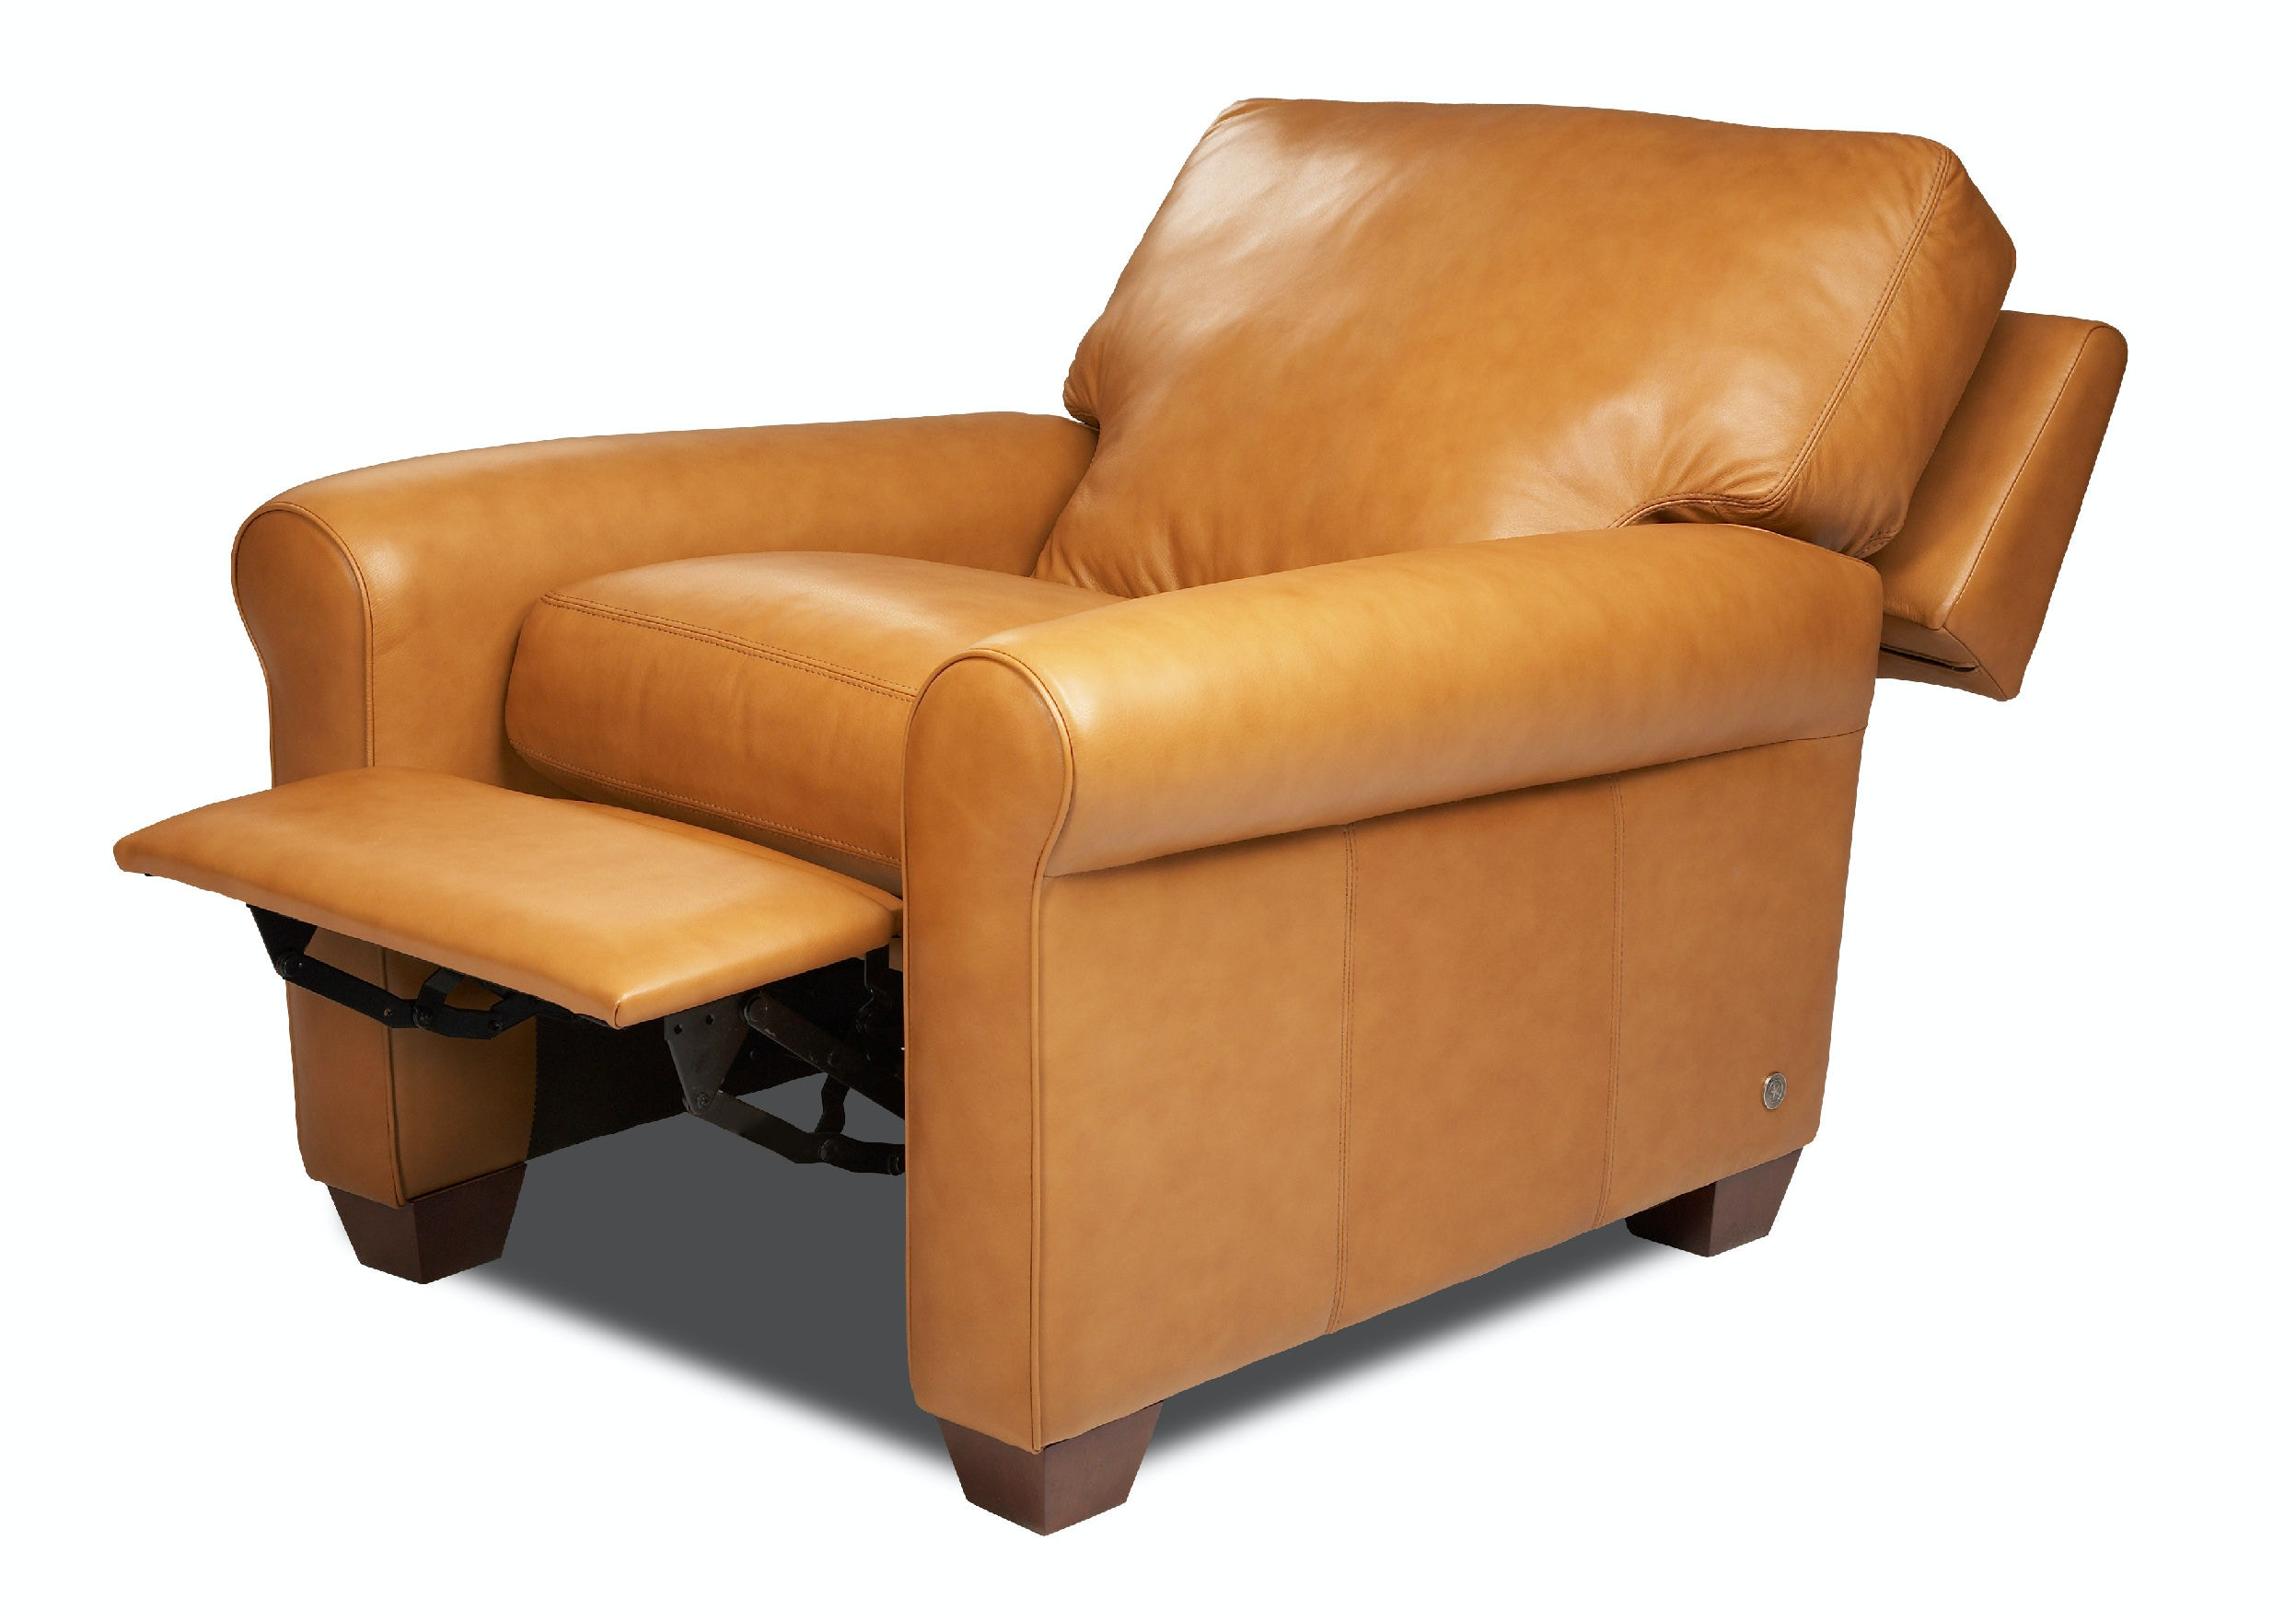 American Leather Recliner Chair SVY REC ST In Portland, Oregon